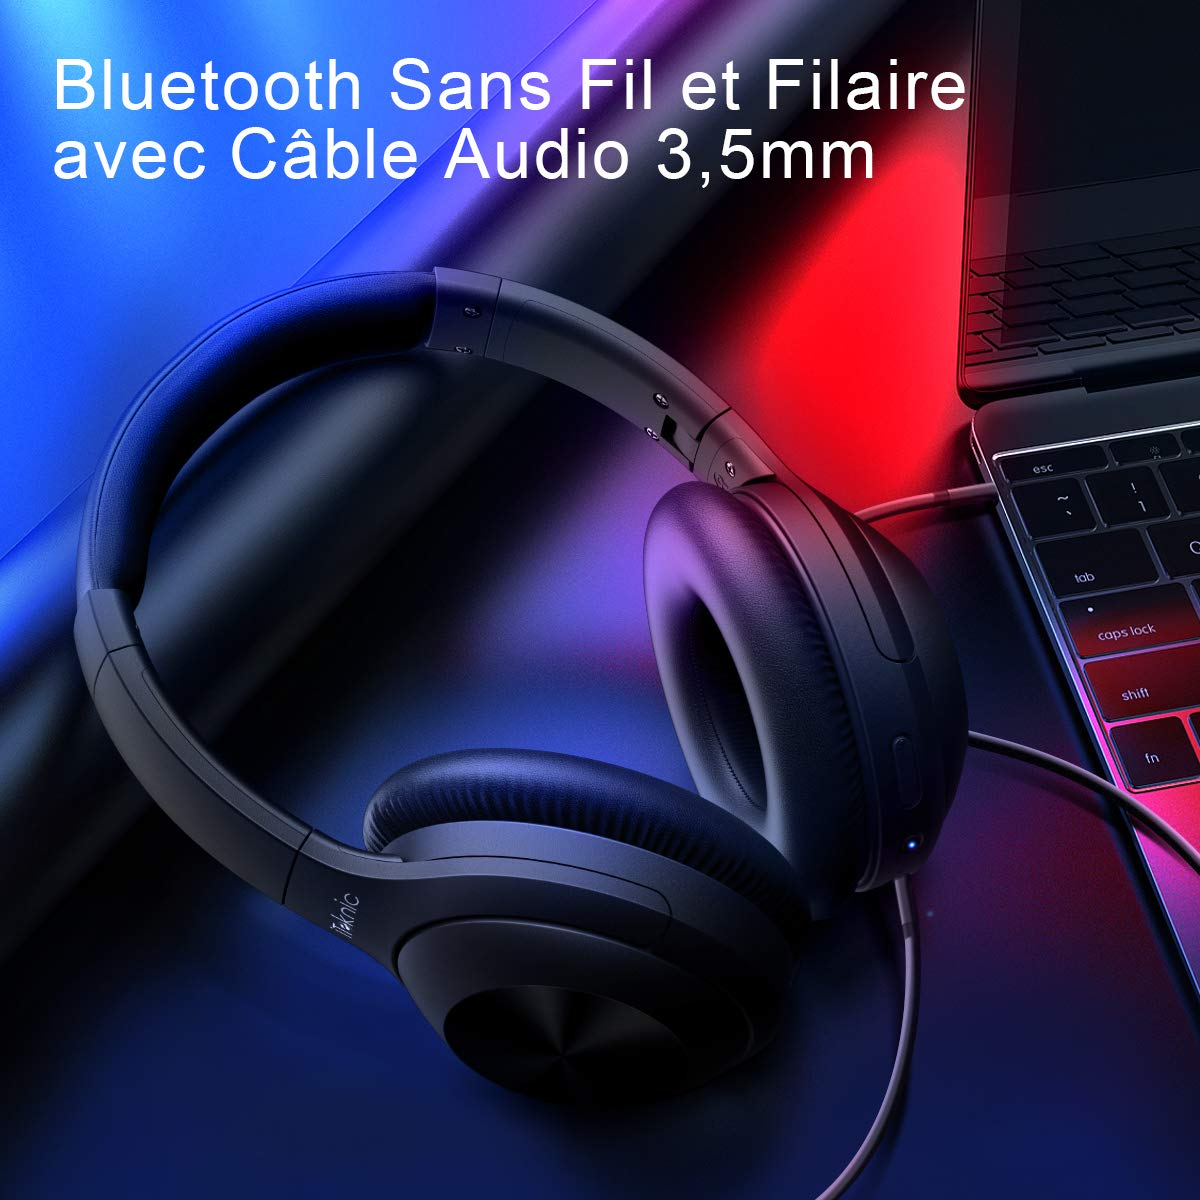 Casque Bluetooth sans Fil, iTeknic Casque Bluetooth Réduction de Bruit Active ANC Casque Audio Supra Auriculaire Stéréo Pliable Micro Intégré Casque Anti Bruit Over Ear Compatible avec iPhone Android